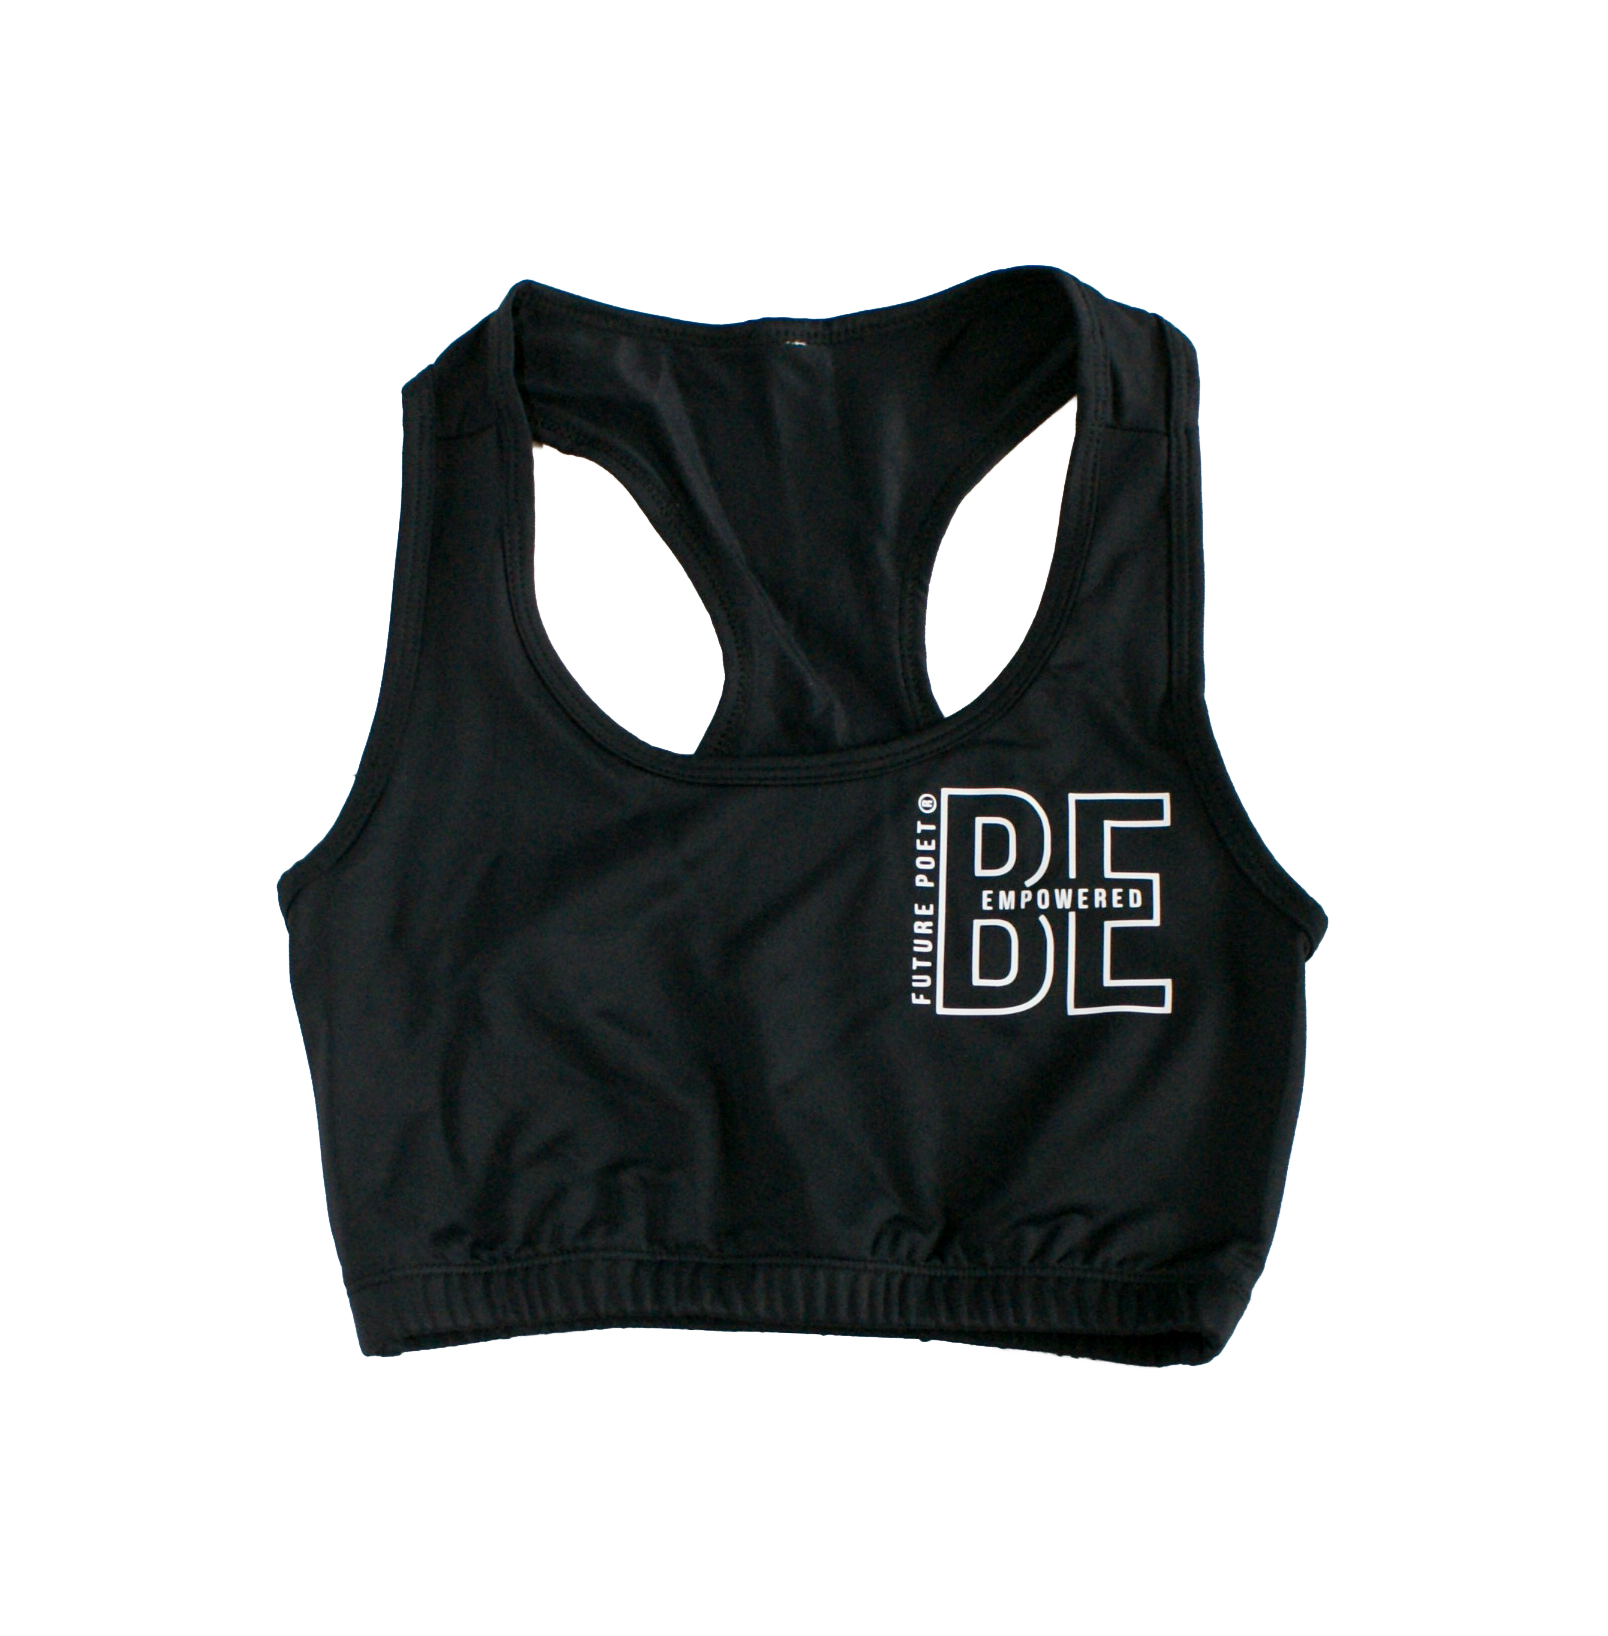 Be Empowered - Womens Black Bra Crop Top